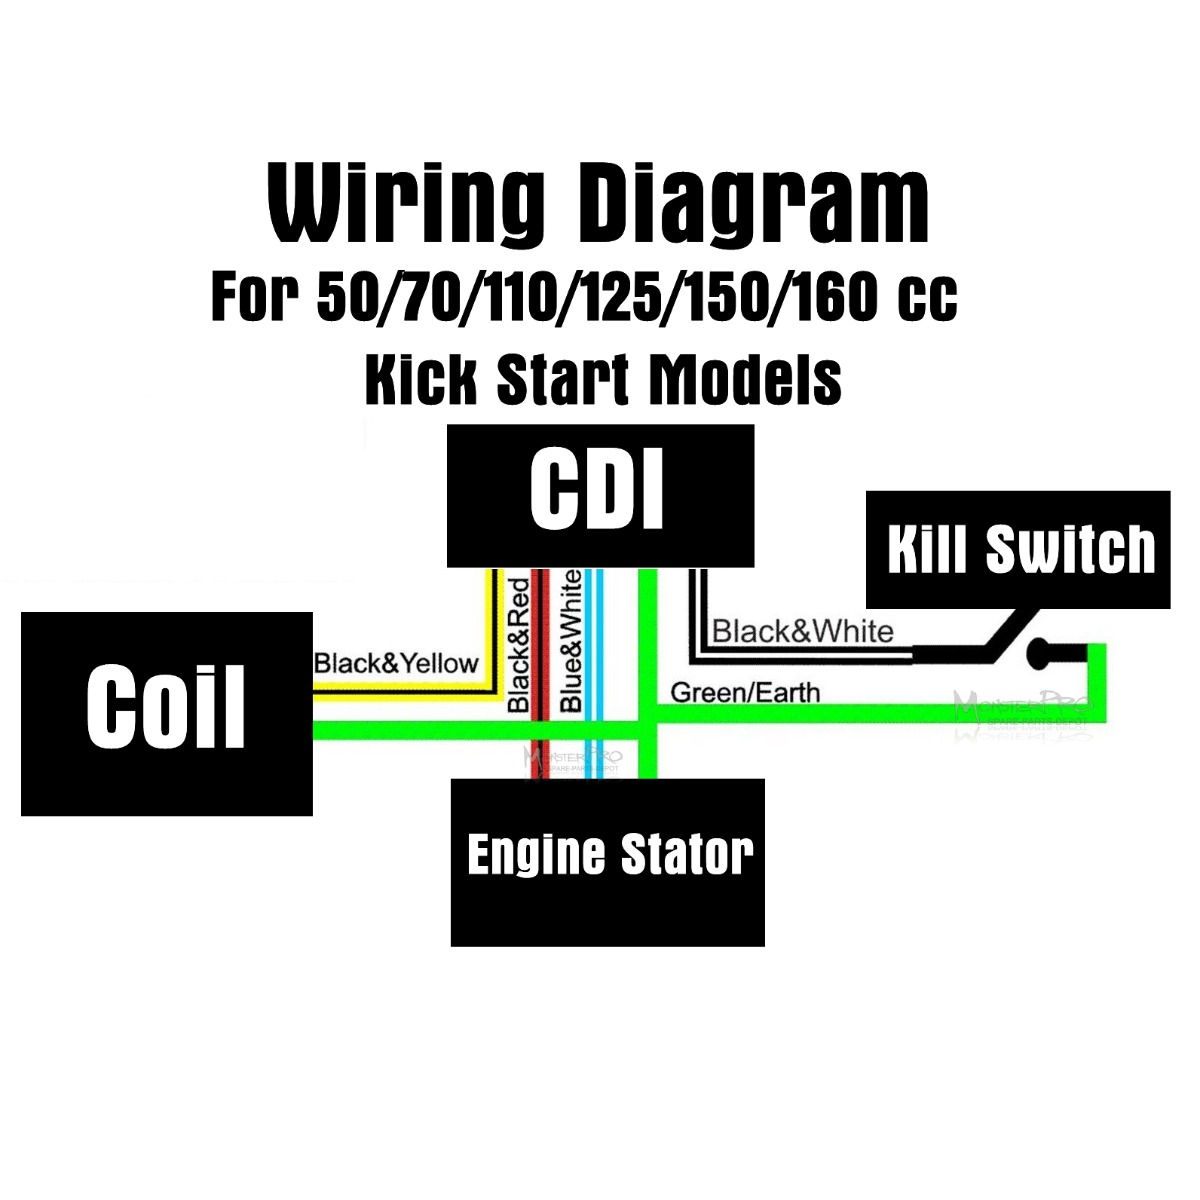 Wiring Diagram 110 Trail Bike Diagrams 125cc Pit Ssr Free Engine Image For User Home